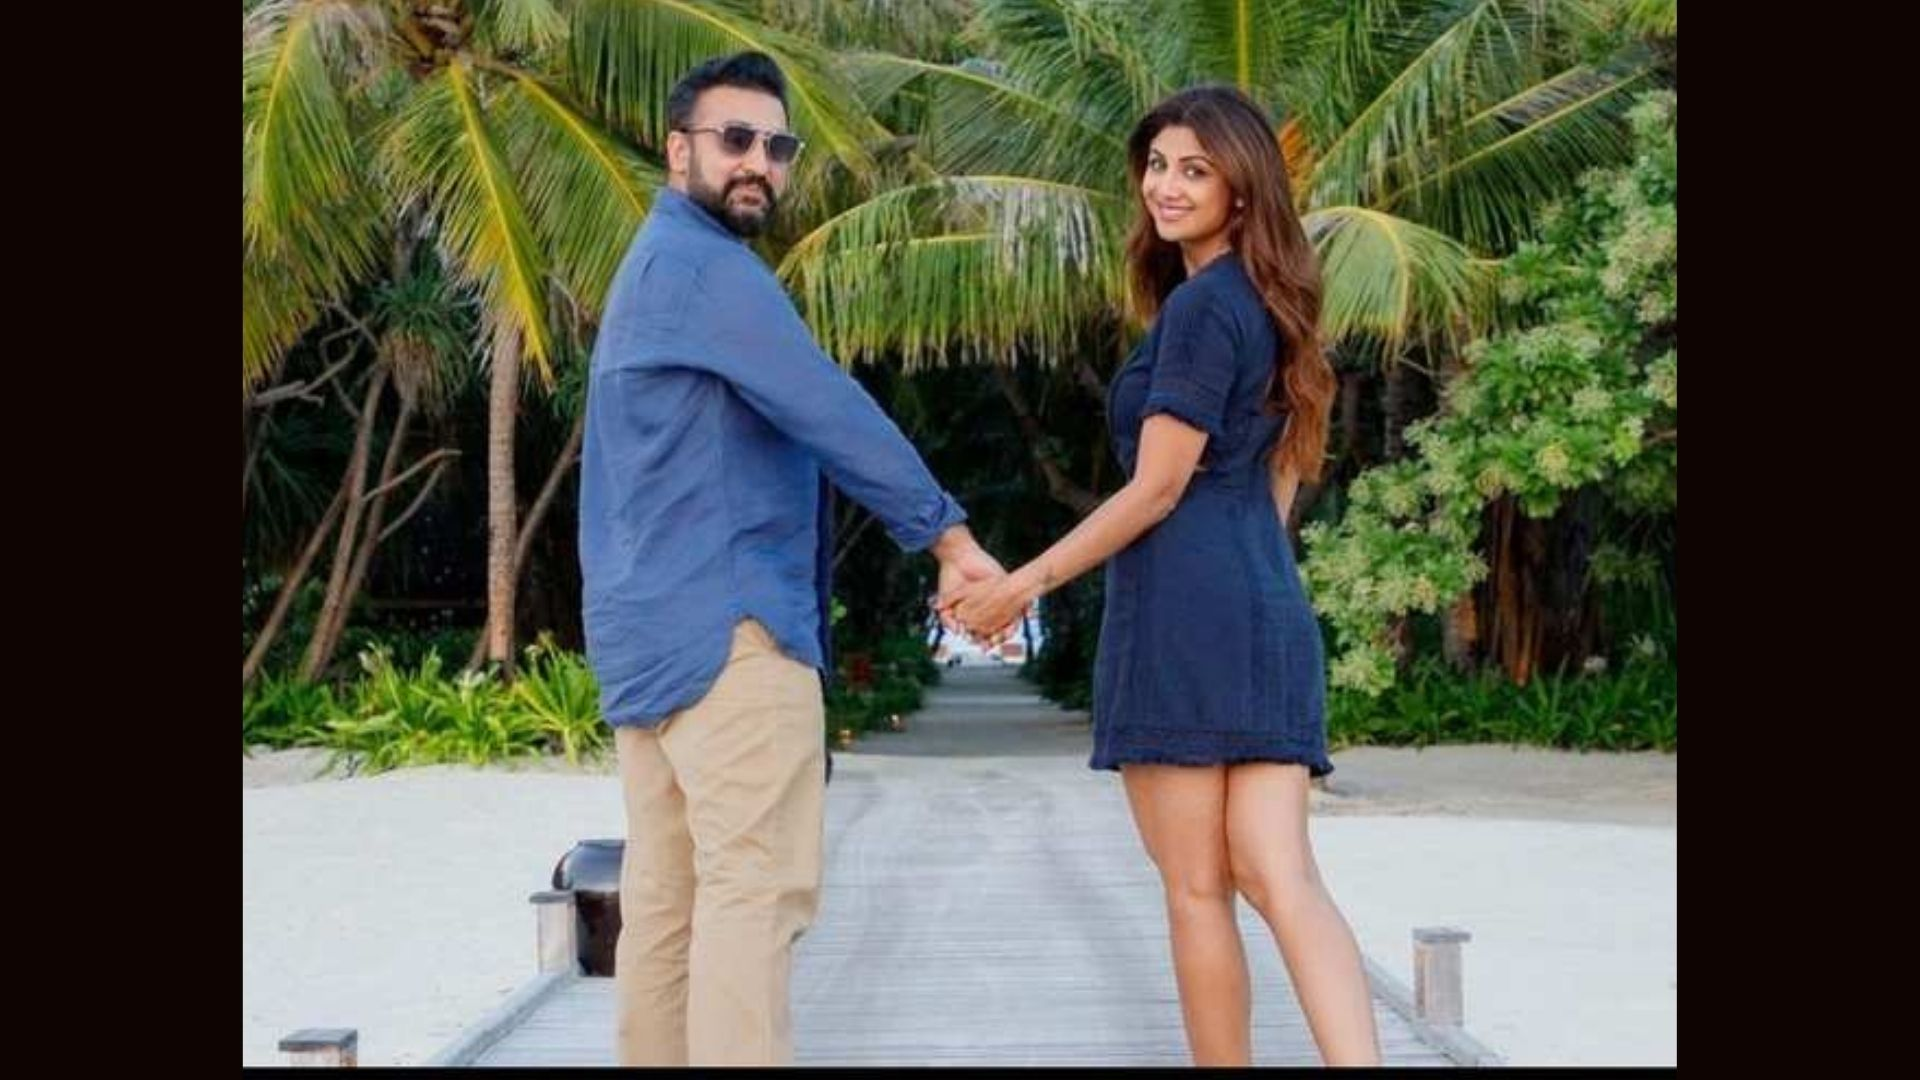 Shilpa Shetty's Posts Reveal How She Stayed Positive While Husband Raj Kundra Was In Jail For Two Months